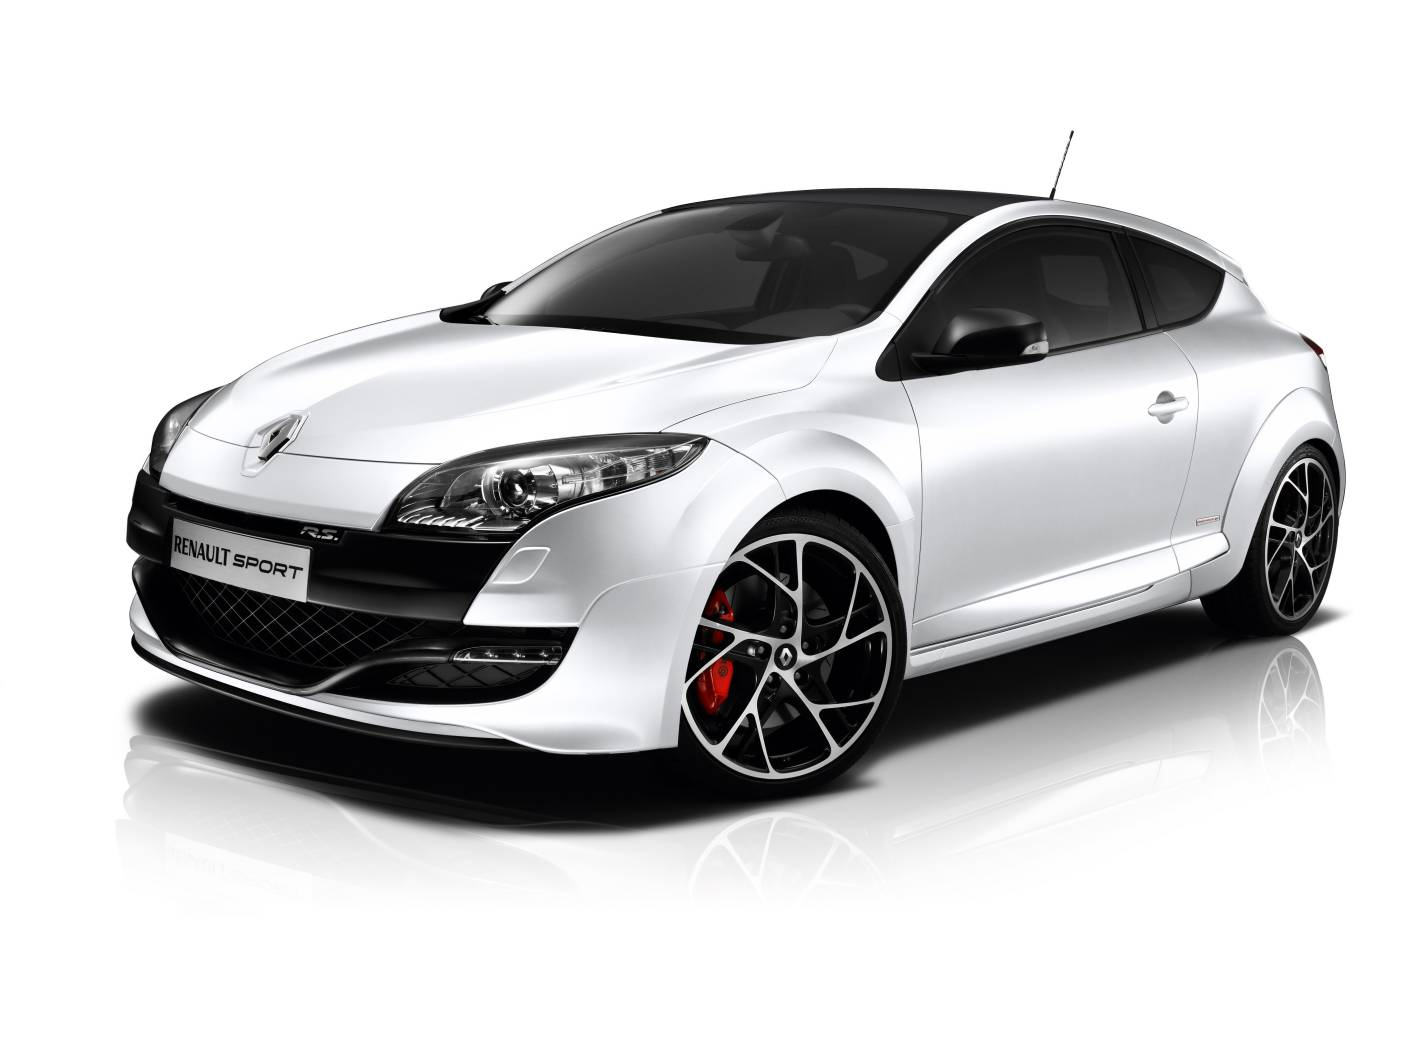 news limited edition renault megane rs250 monaco grand prix. Black Bedroom Furniture Sets. Home Design Ideas